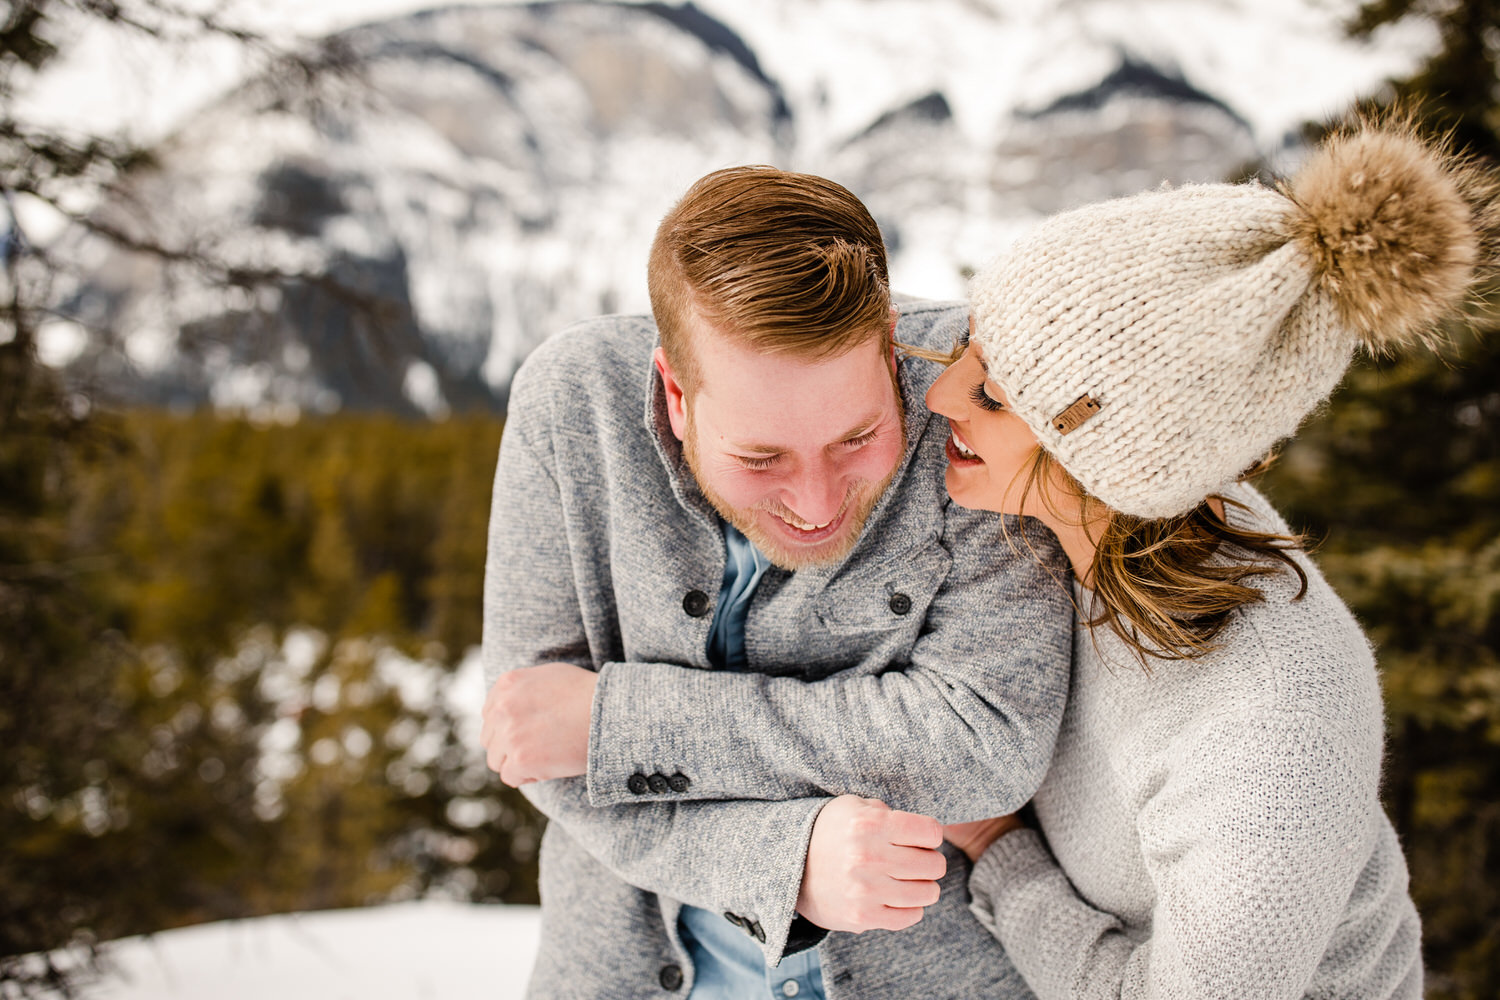 A fun engagement shoot in Banff National Park with snow falling